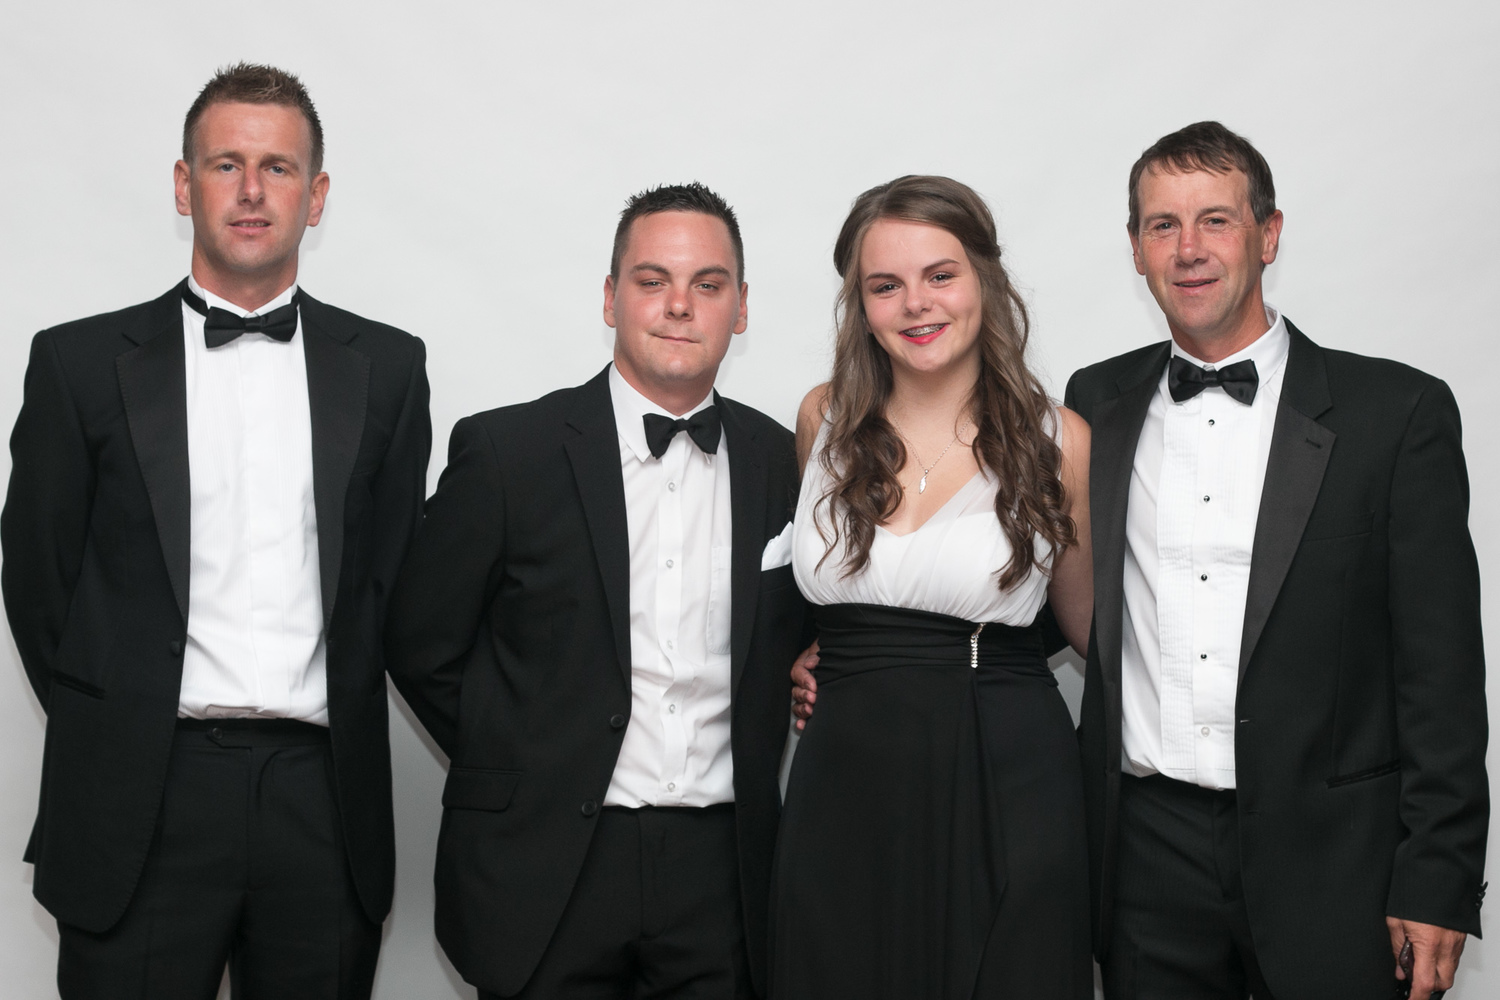 Black Tie Event Photography Imperial Hotel Blackpool Tangerine